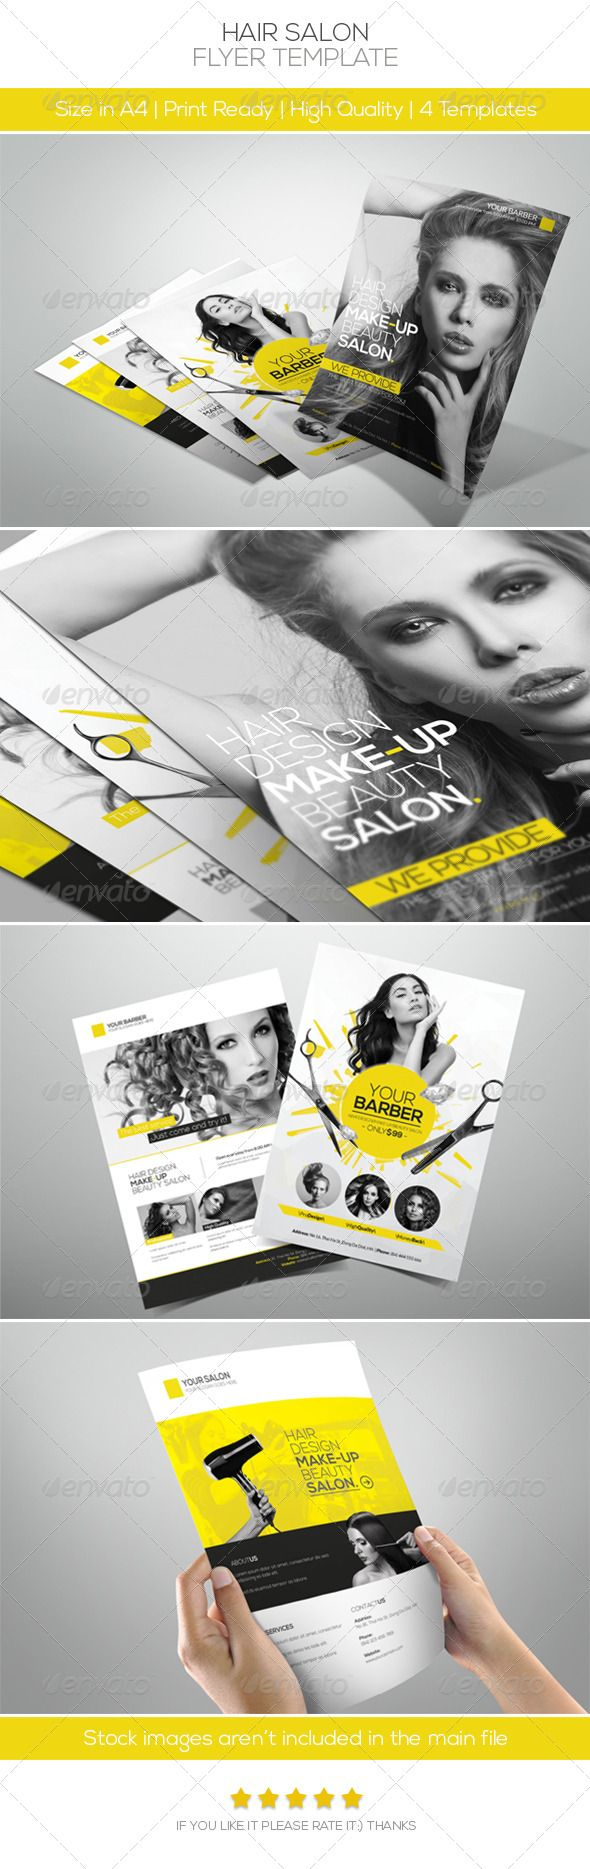 Premium Hair Salon Flyer #GraphicRiver Features: • 4 different styles included • Fully Editable Files (w Guidelines) • Well Organized Layers • A4 size(3mm Bleeds) • 300DPI   CMYK Colors   Print ready • Help file included Fonts: • Nexa fontfabric /nexa-free-font • Lato .fontsquirrel /fonts/lato Important Stock images aren't included, I used it for the illustration purpose only (plz contact me if you want the download link) Created: 6June13 GraphicsFilesIncluded: PhotoshopPSD